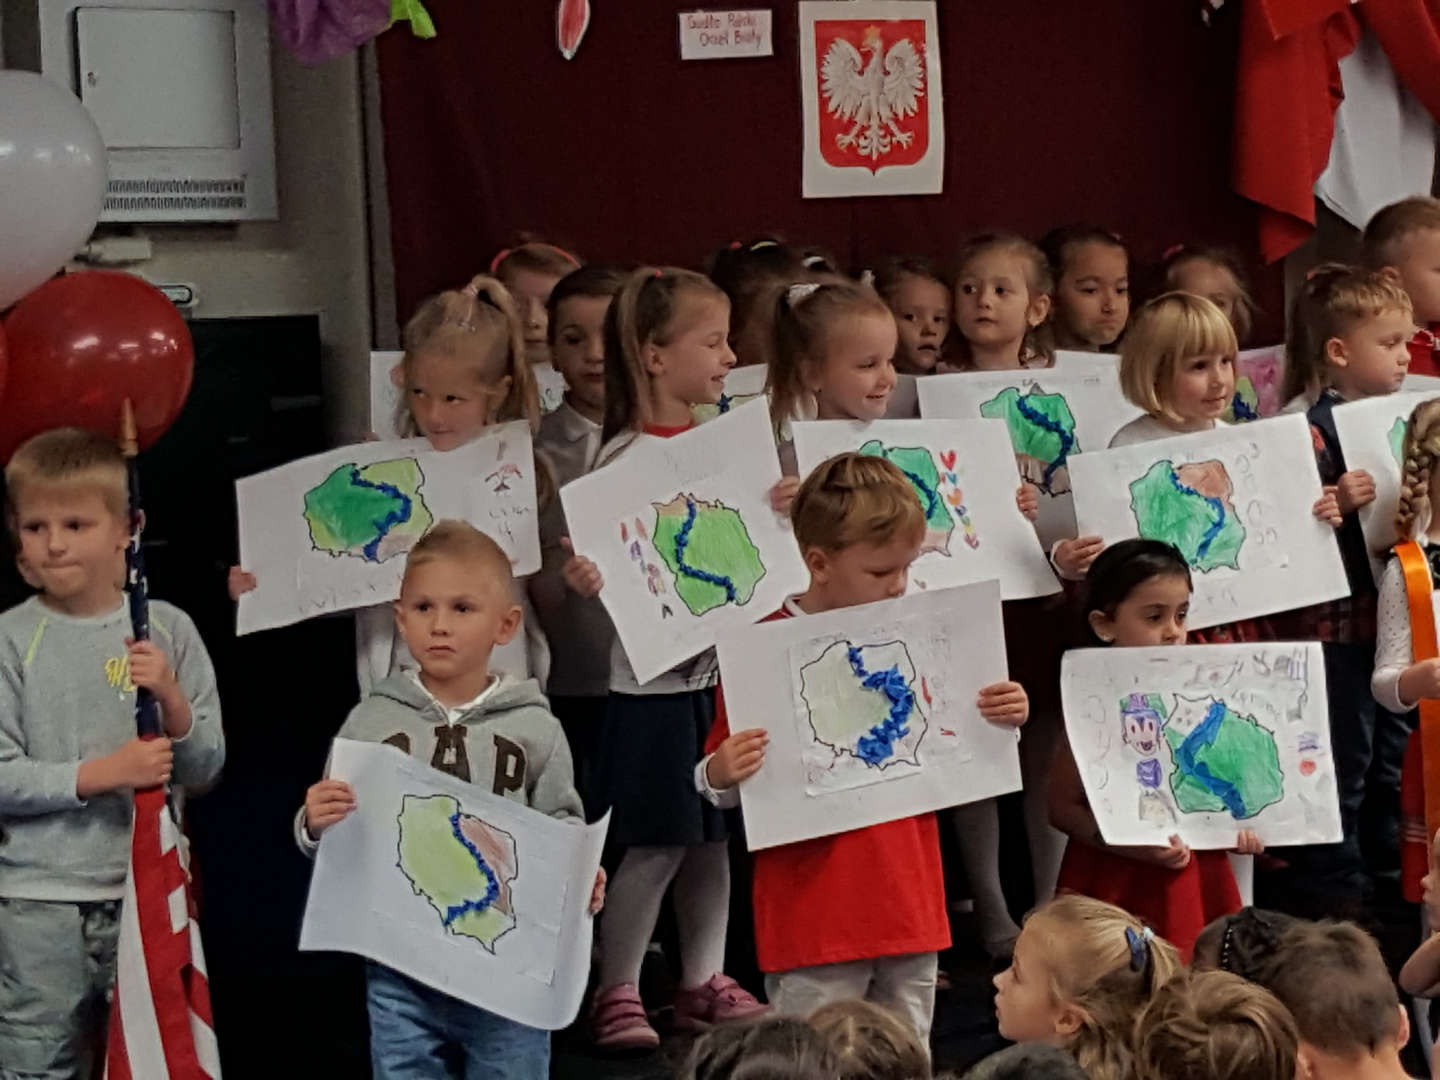 Polish Bilingual Celebration with students singing